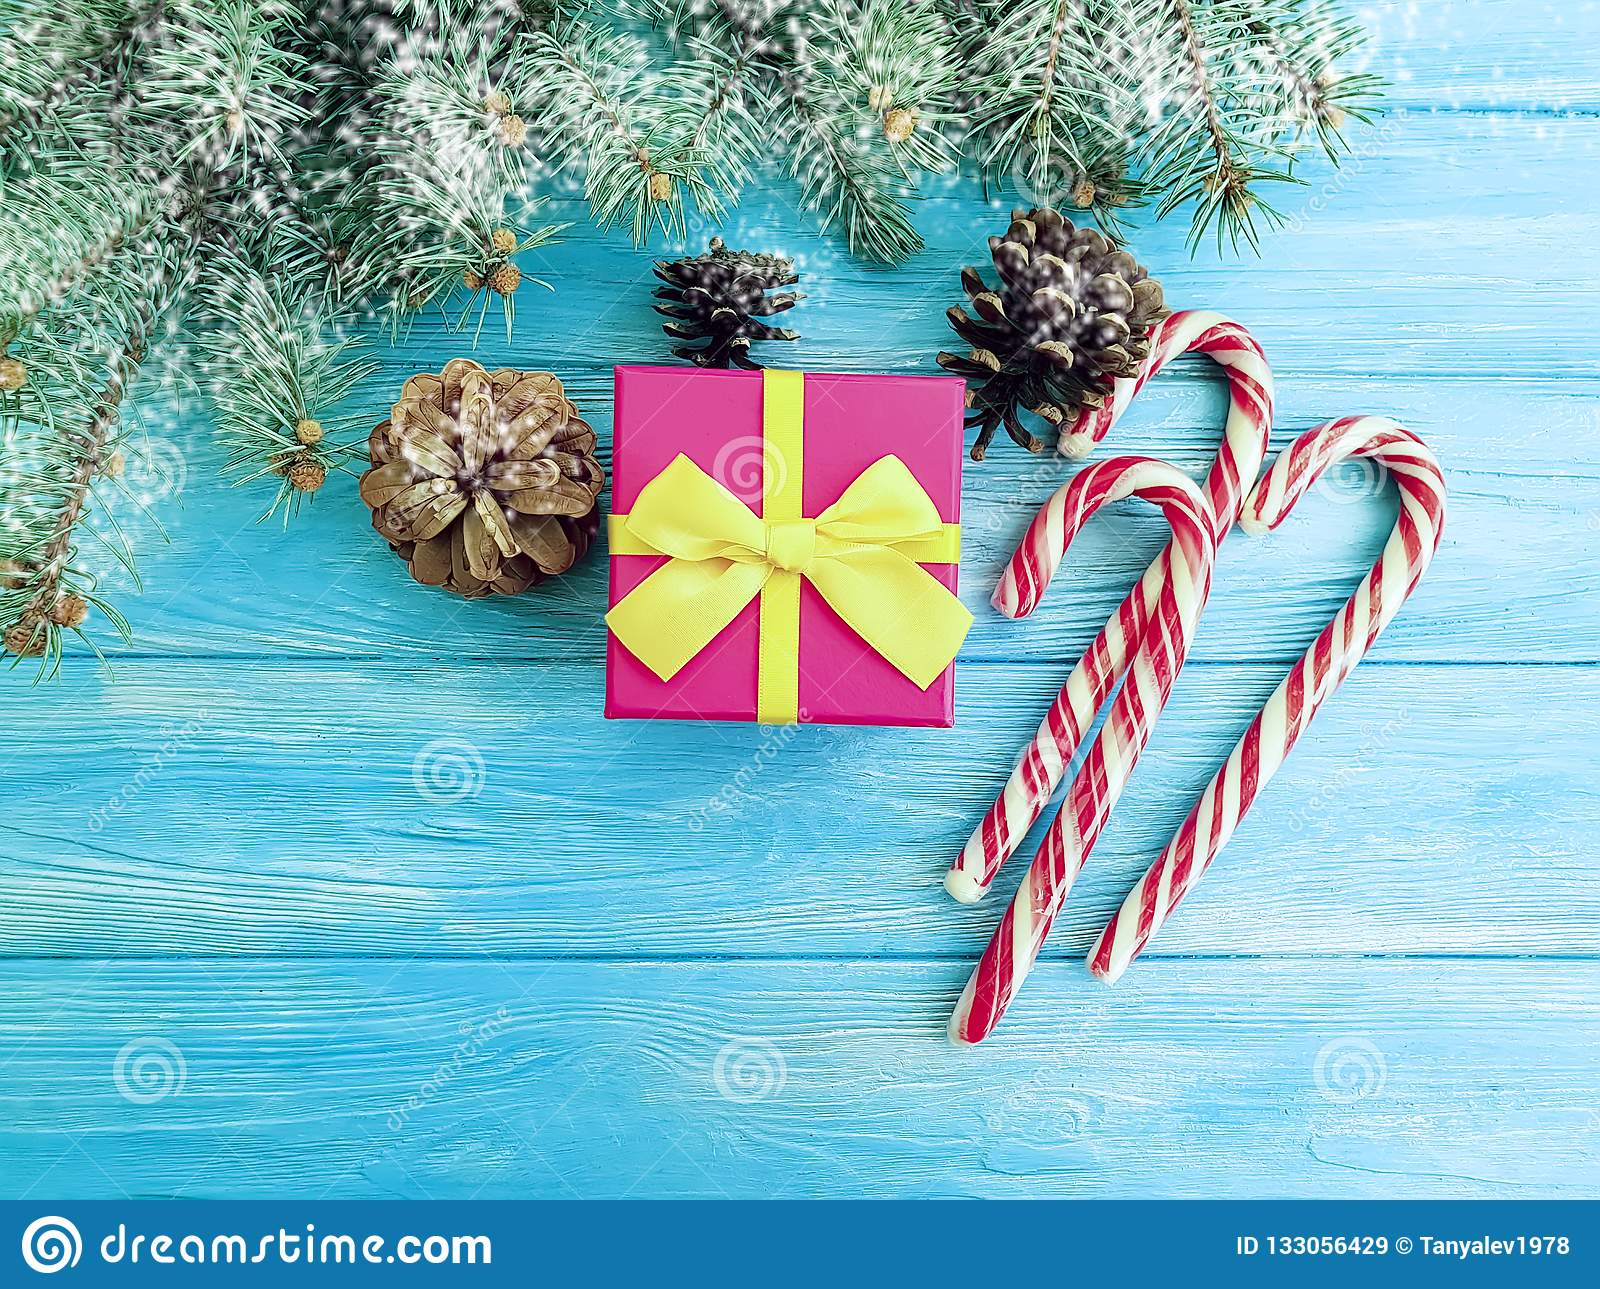 Candy Christmas Tree Branch Gift Box On A Blue Wooden Background Stock Image Image Of Copy Frame 133056429